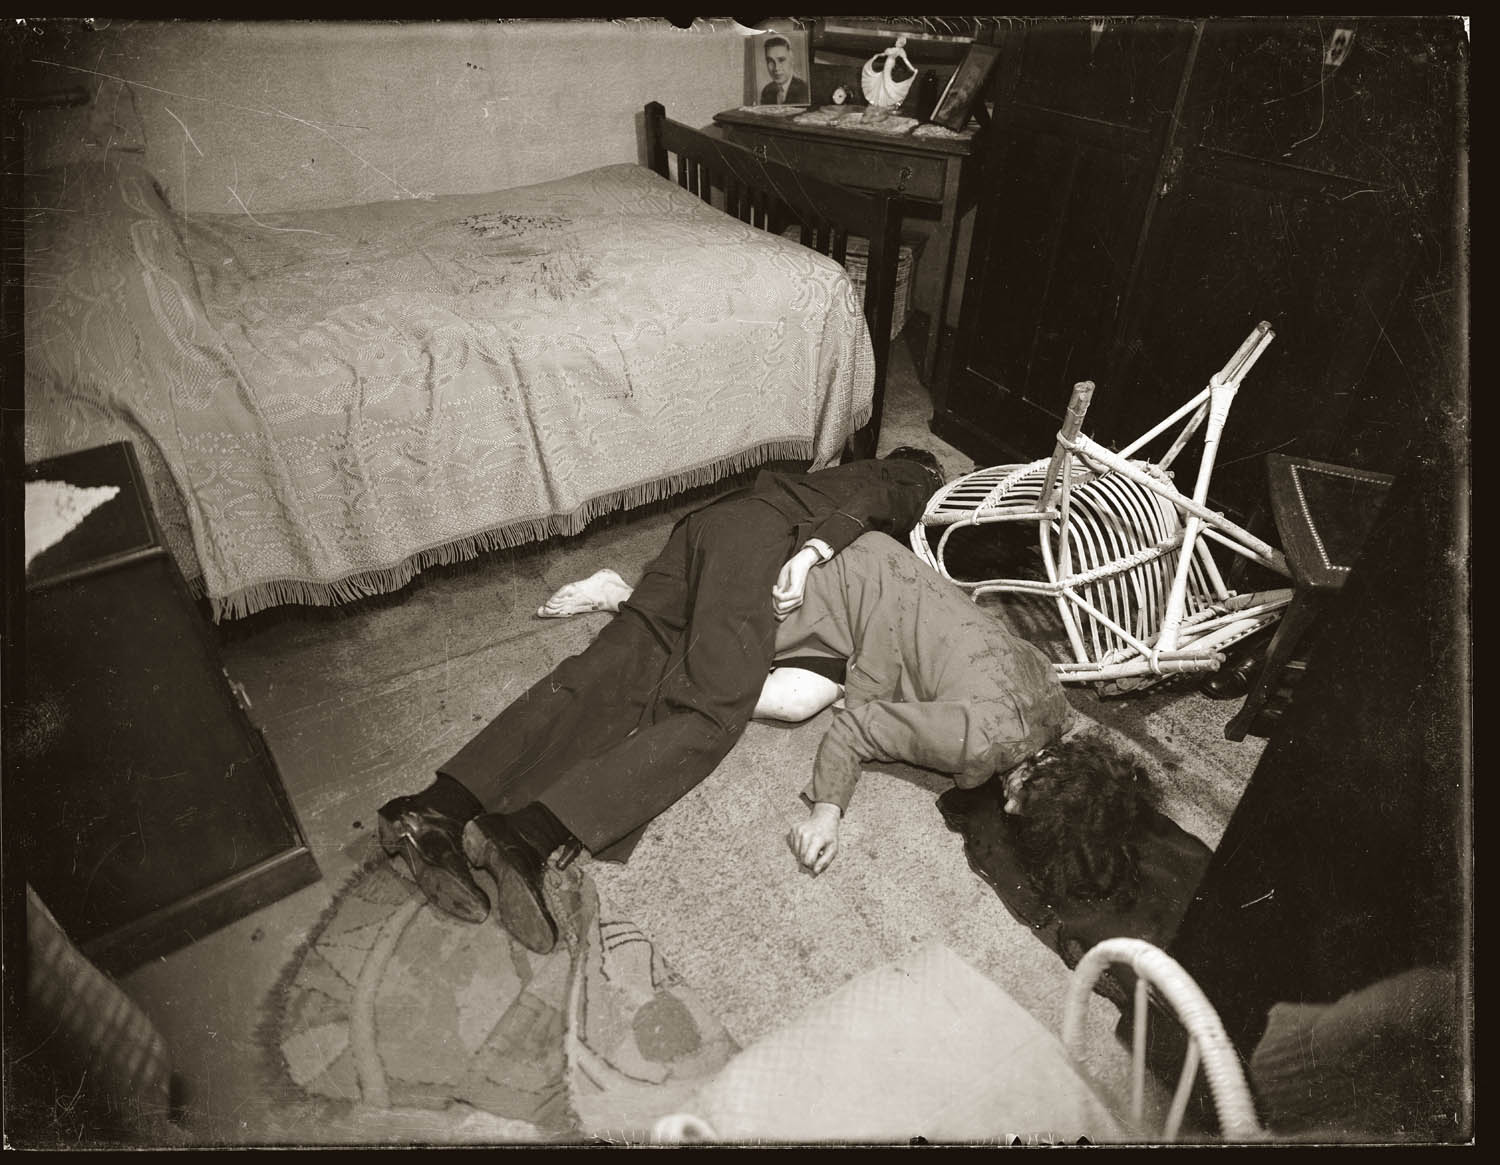 10 moving crime scene photos from the 1940s we heart vintage blog